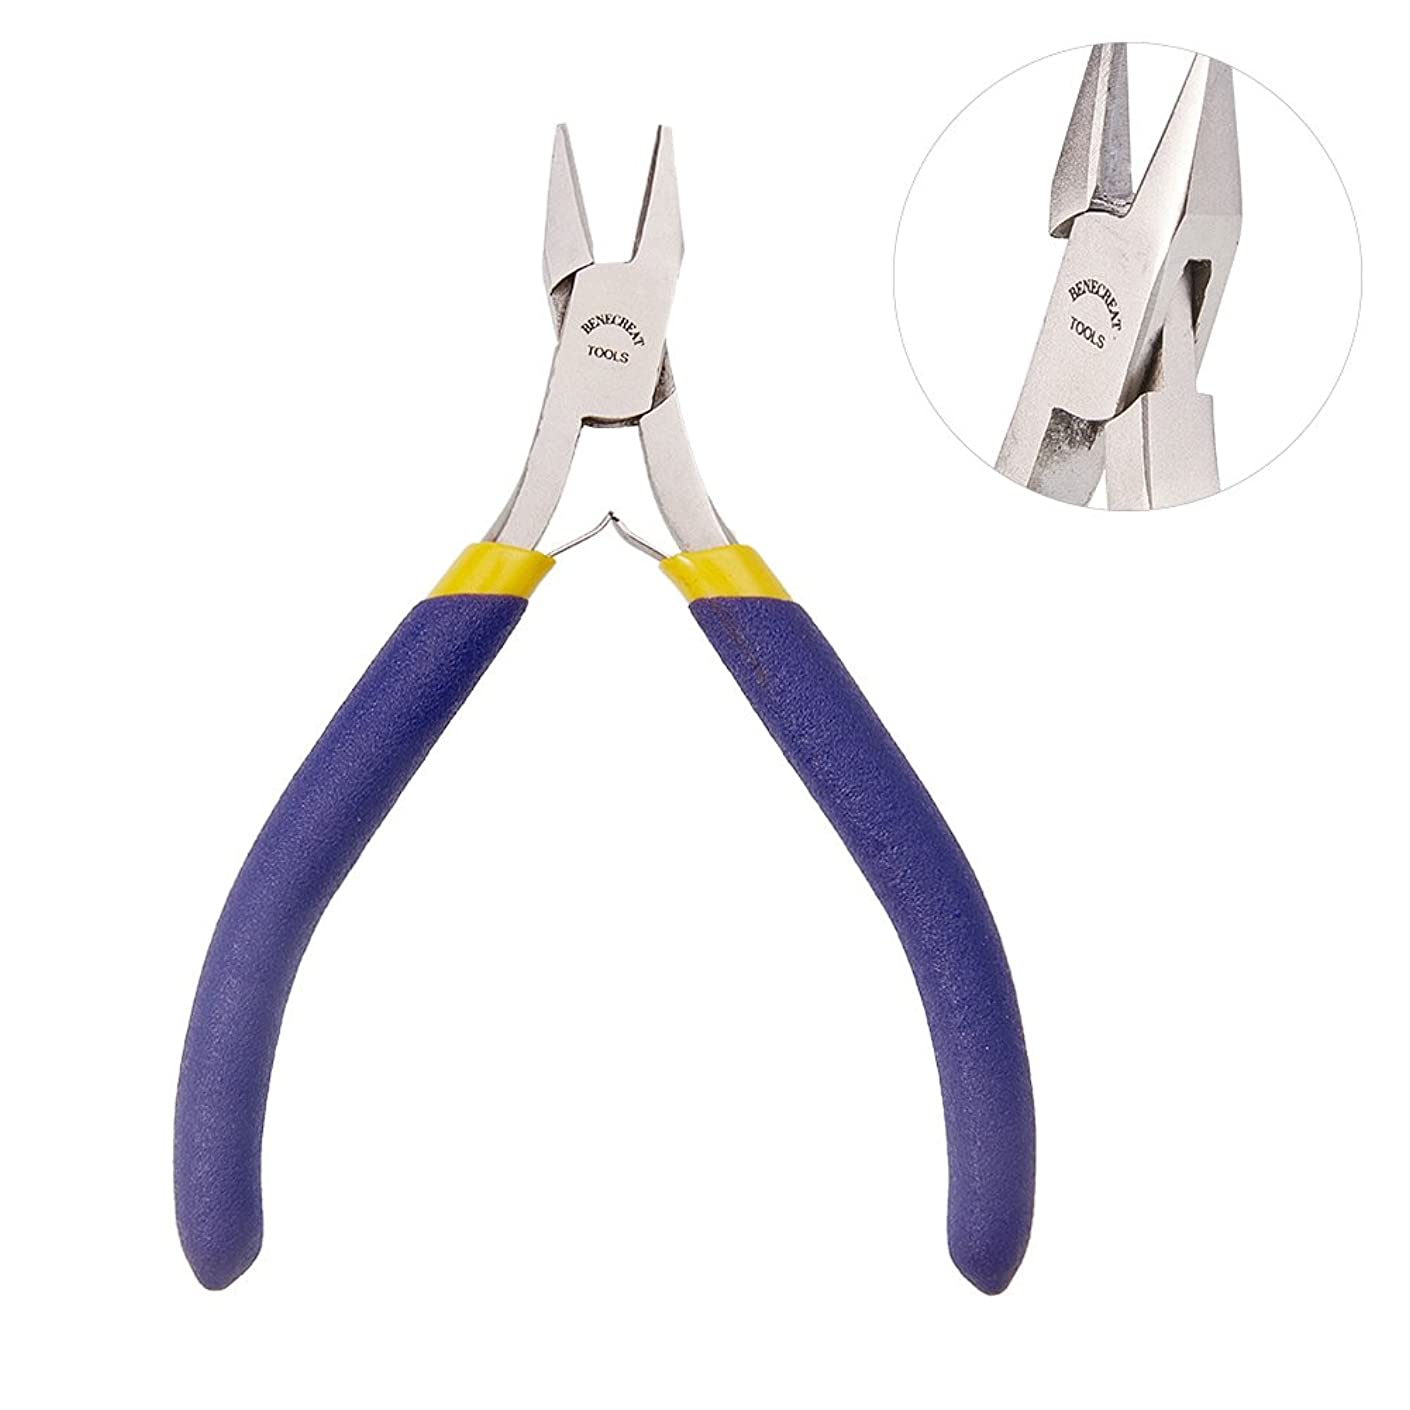 BENECREAT 4.2 Inch Side Cutting Pliers Jewelry Plier, Craft and Jewelry Tool Kit (Box Joint Construction)